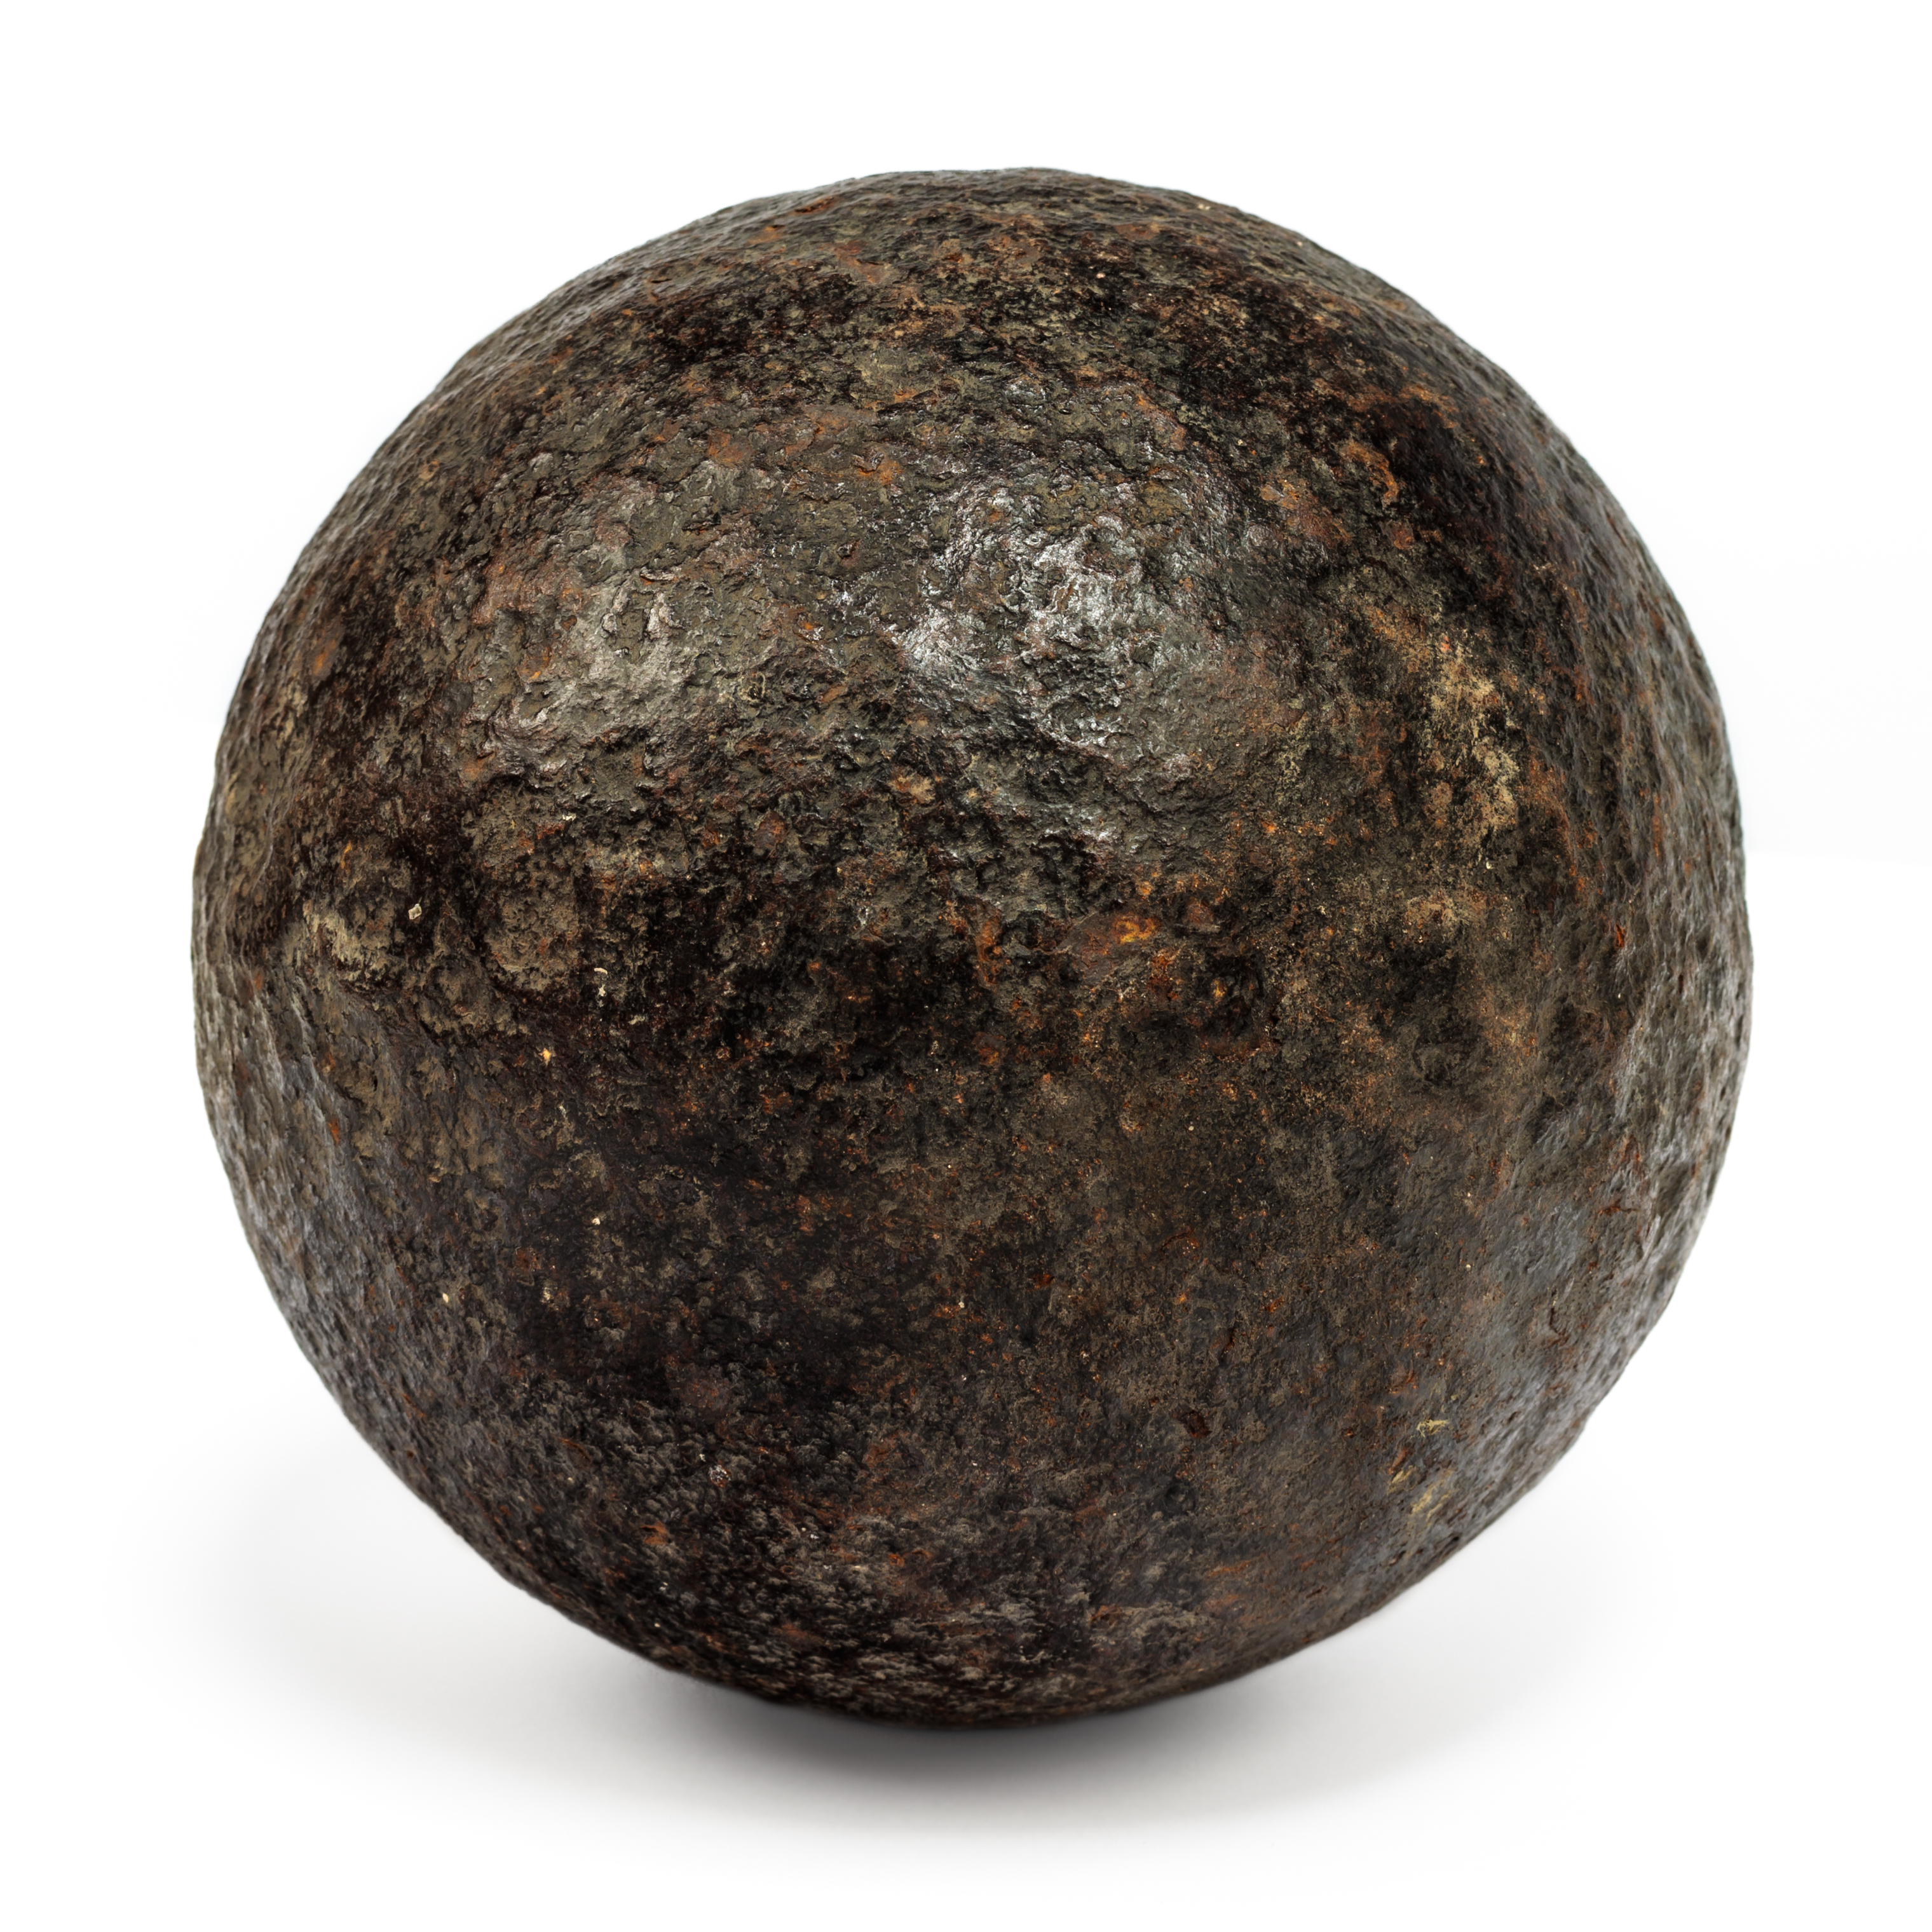 The cannonball, like this one, was dislodged from a tree in Kansas City